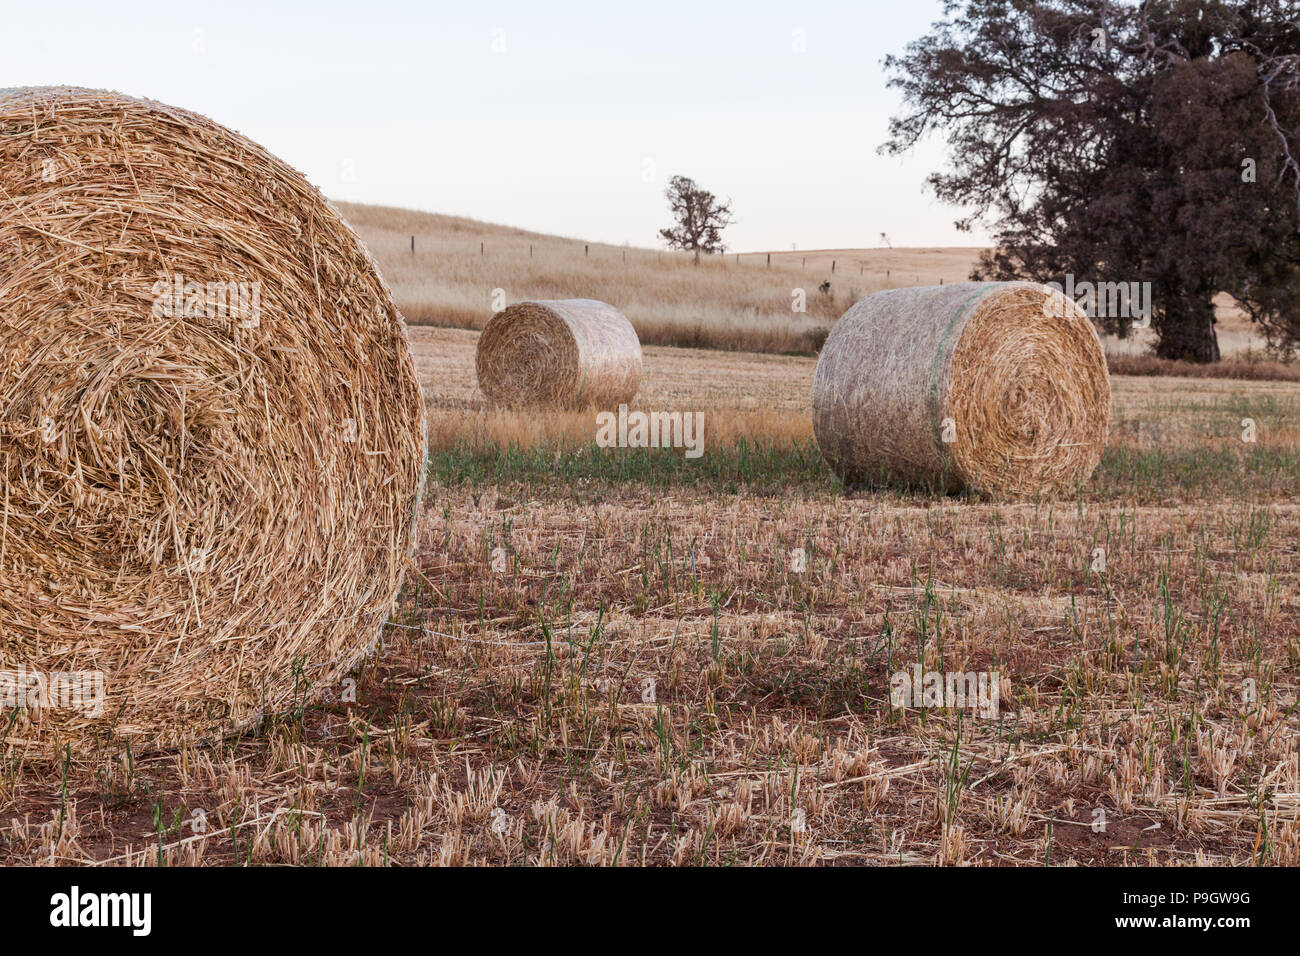 Freshly rolled haybails on a countryside in the Adelaide hills South Australia on 22nd November 2012 - Stock Image